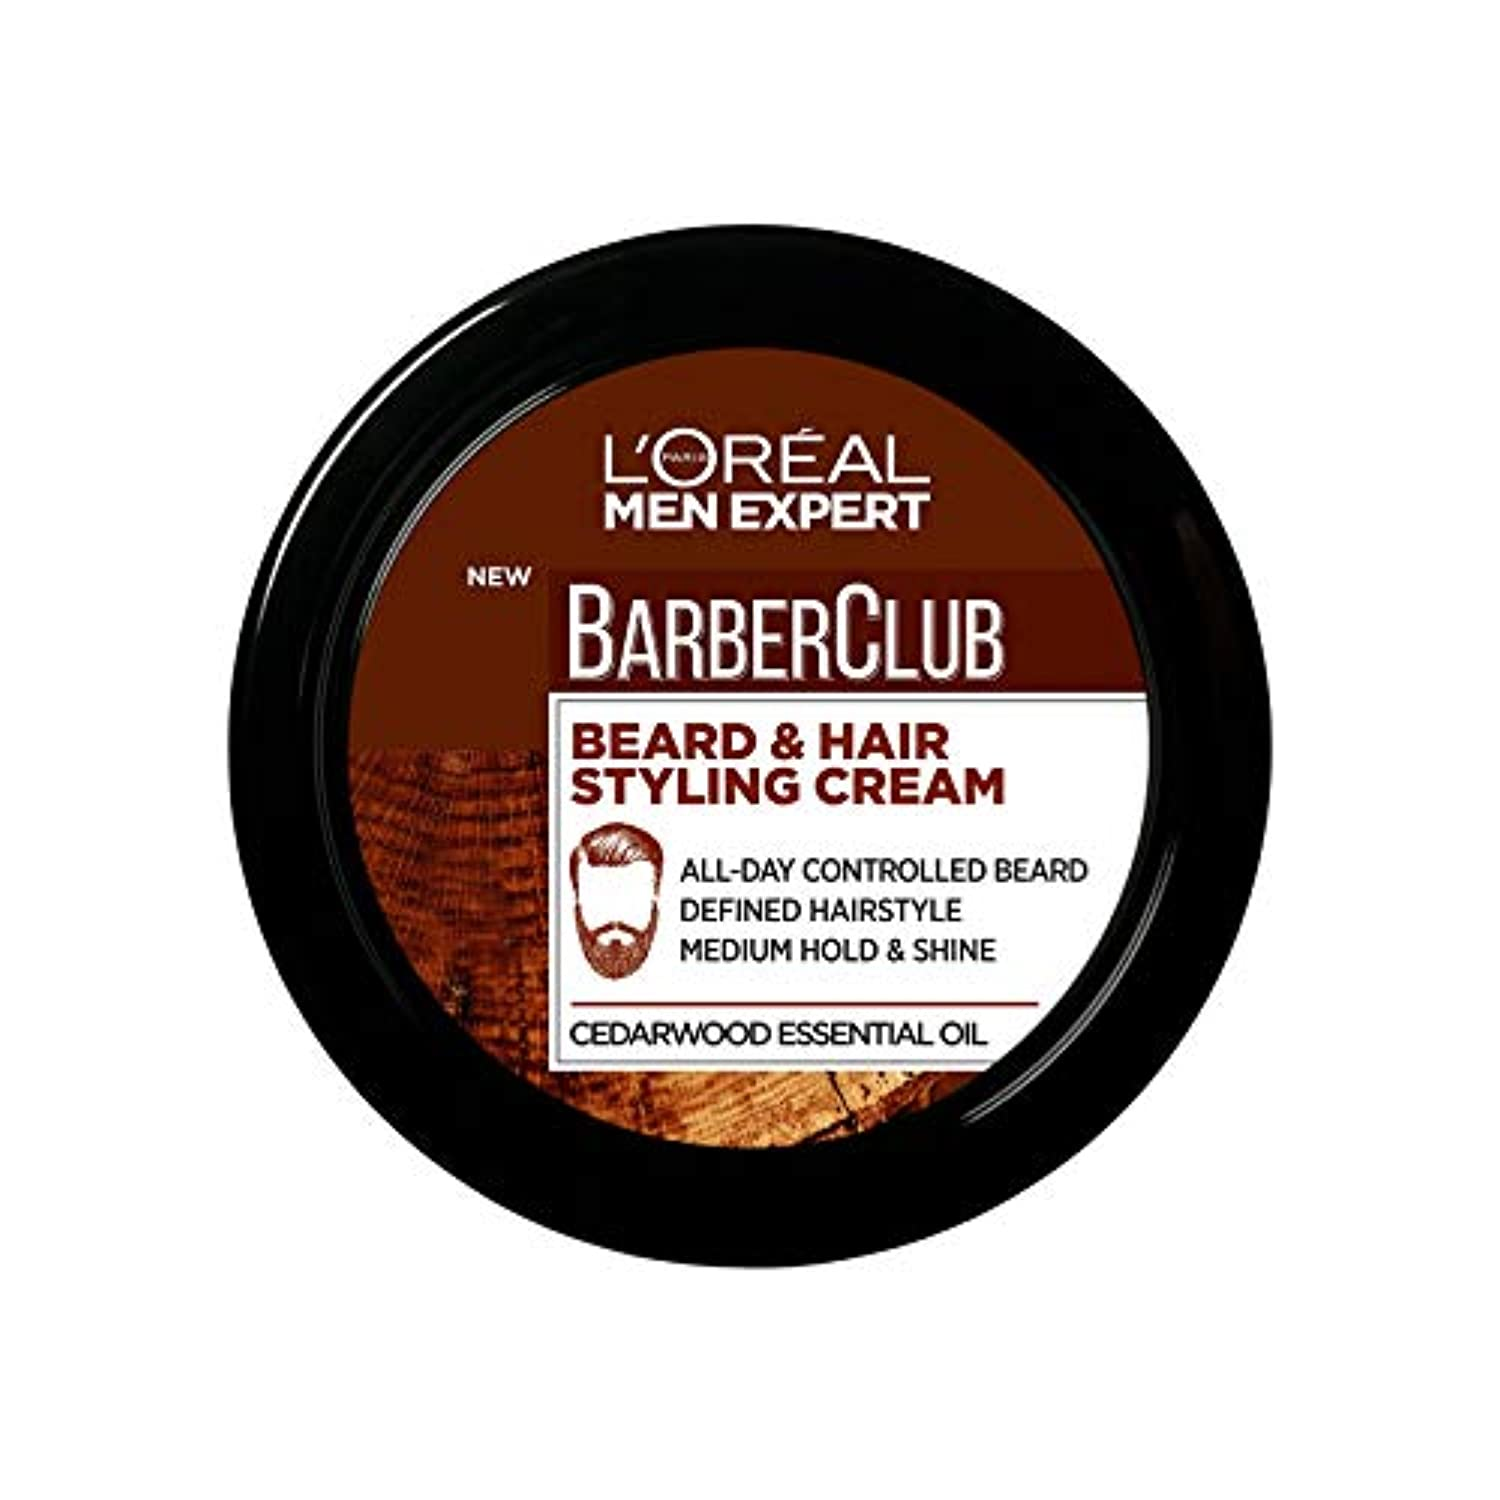 L'Oreal Men Beard & Hair Styling Cream - smrt-life.com